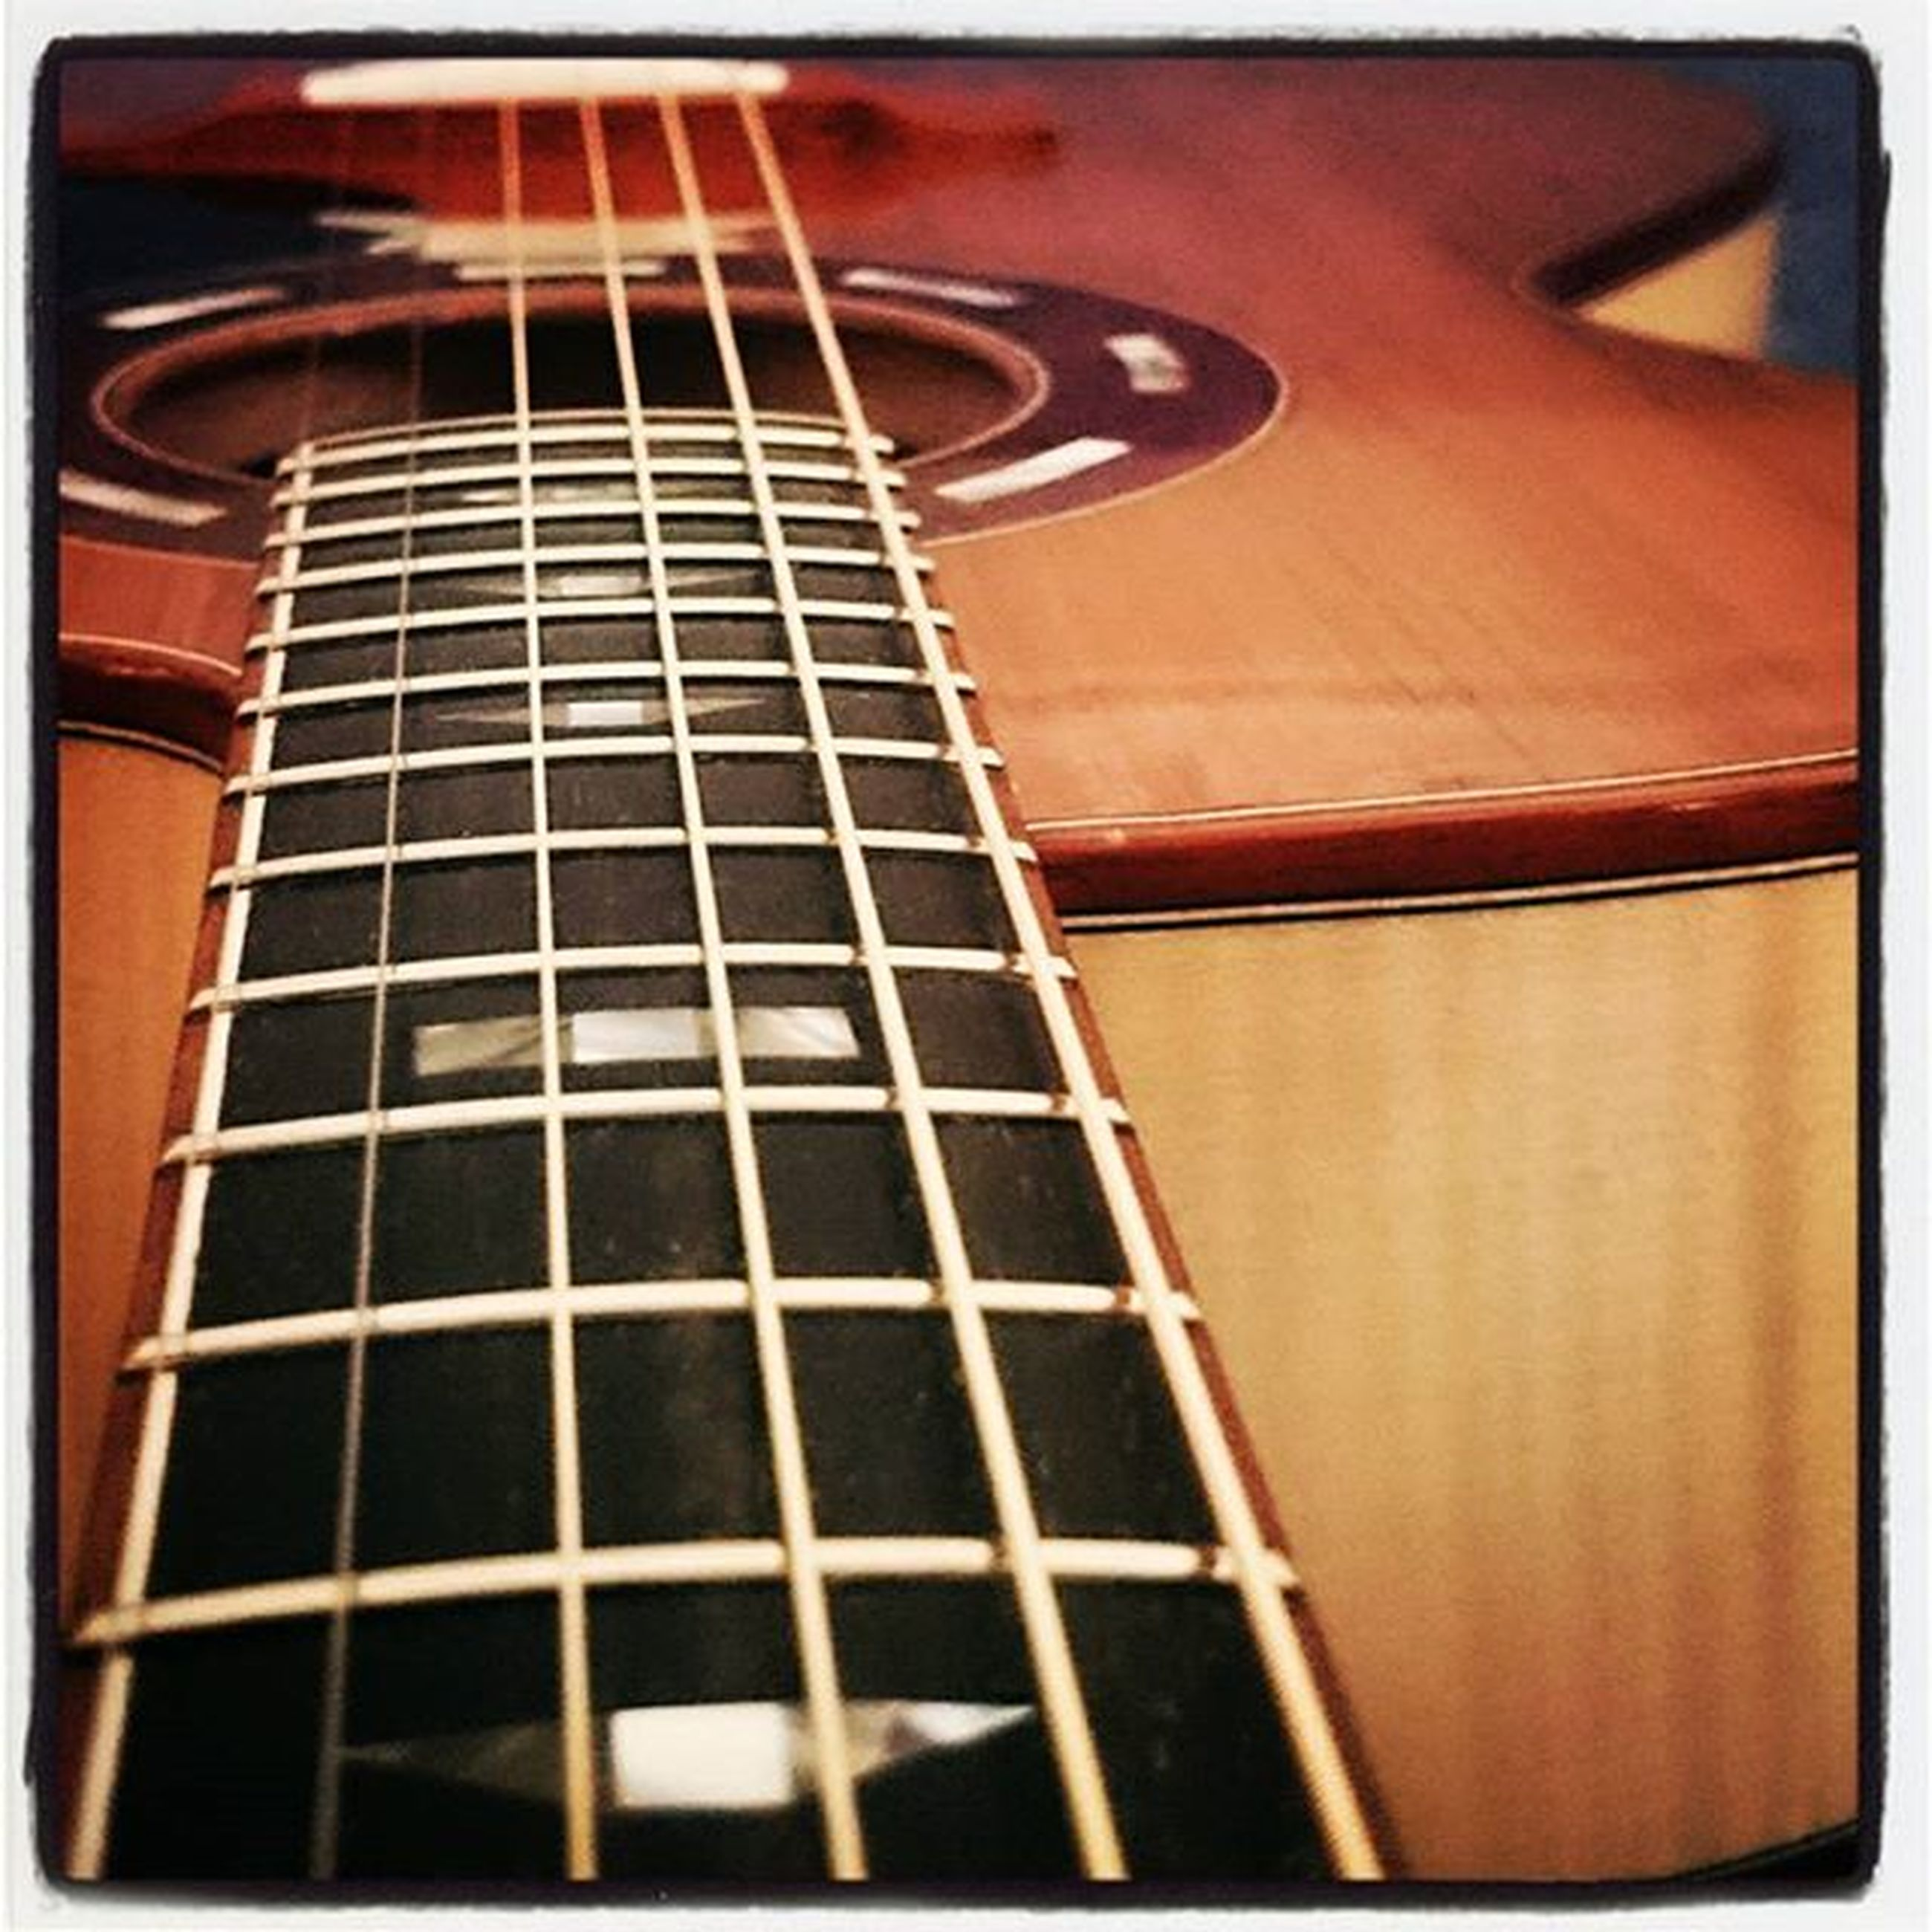 music, musical instrument, arts culture and entertainment, guitar, indoors, musical equipment, musical instrument string, auto post production filter, transfer print, modern, close-up, acoustic guitar, low angle view, string instrument, no people, pattern, selective focus, metal, tall - high, part of